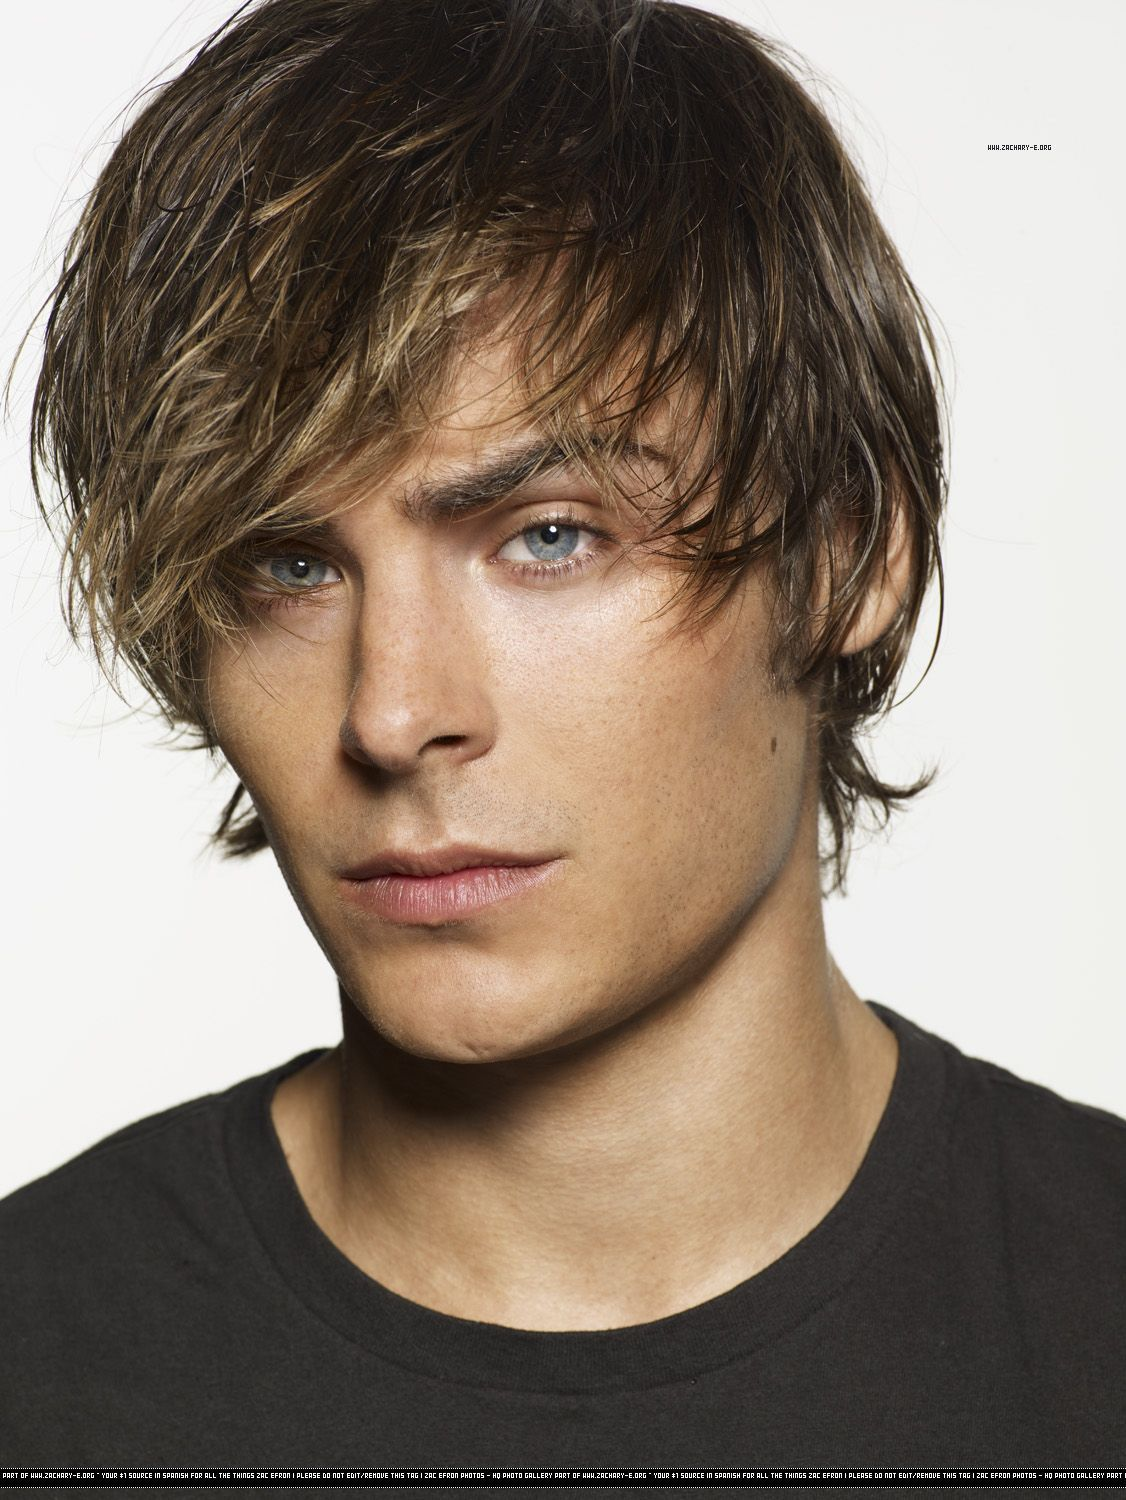 The resemblance between Leon and Zac Efron - Resident Evil 4 ...